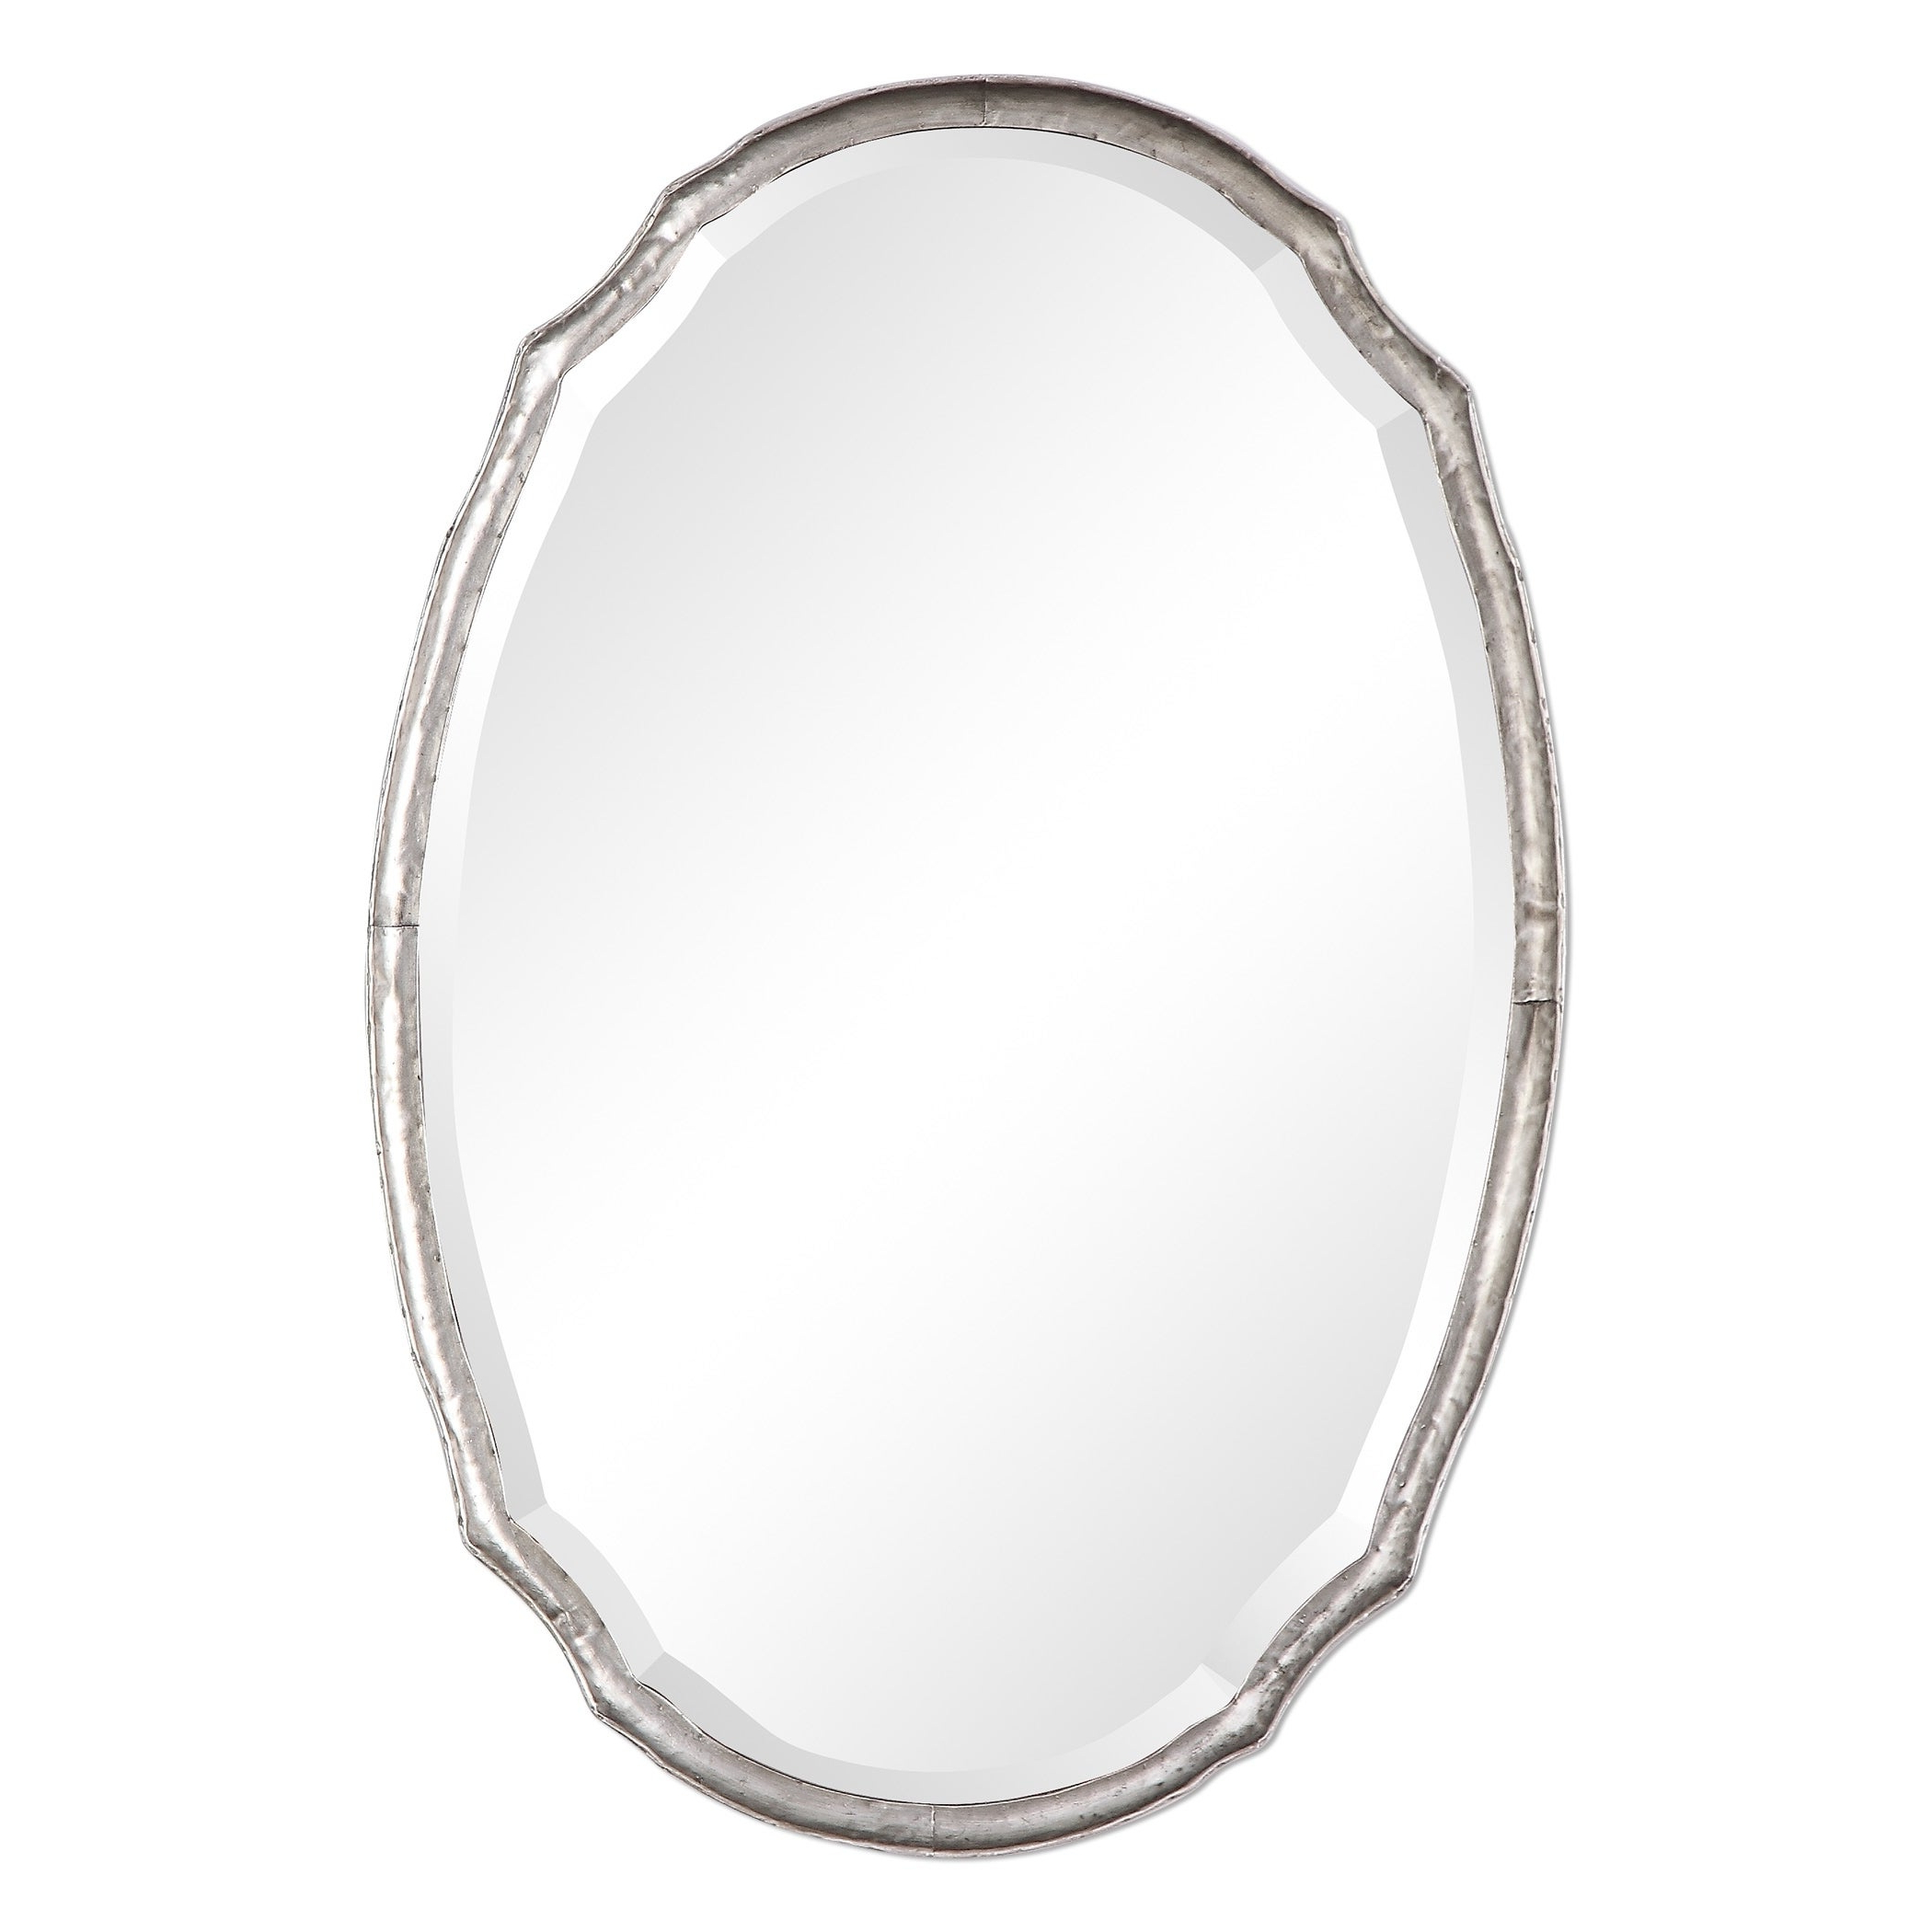 The Gray Barn Wilset Hammered Silver Oval Wall Mirror Pertaining To Well Known Oval Wall Mirrors (View 17 of 20)